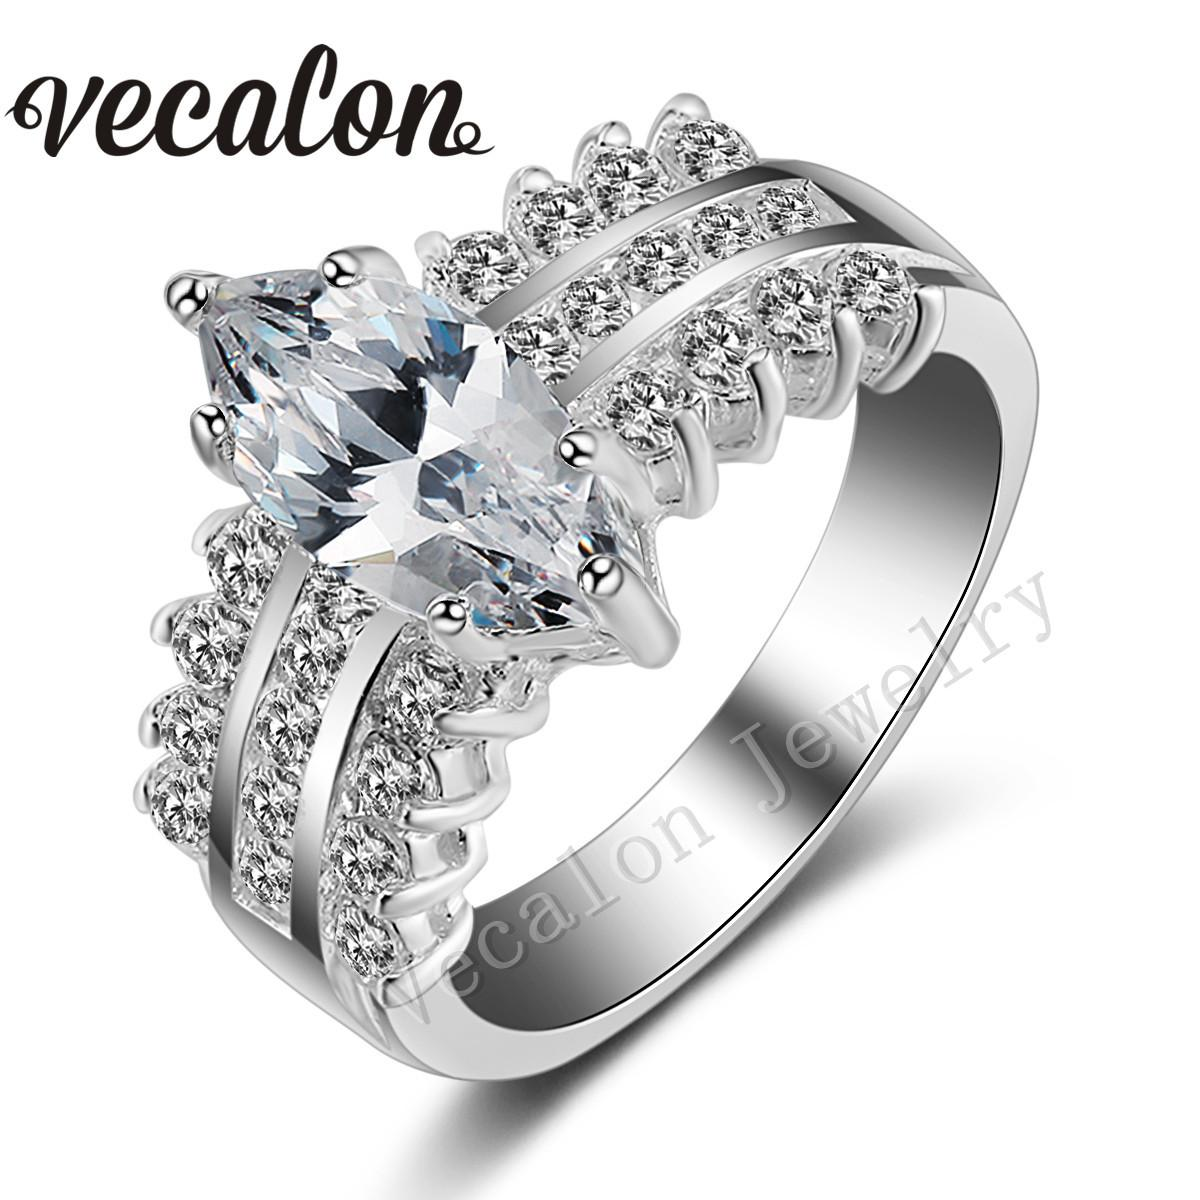 2018 Vecalon 2016 Fashion Brand Handmade Marquise Cut 5ct Cz Simulated Diamond 925 Sterling Silver Engagement Band Wedding Ring For Women From Simplefashion